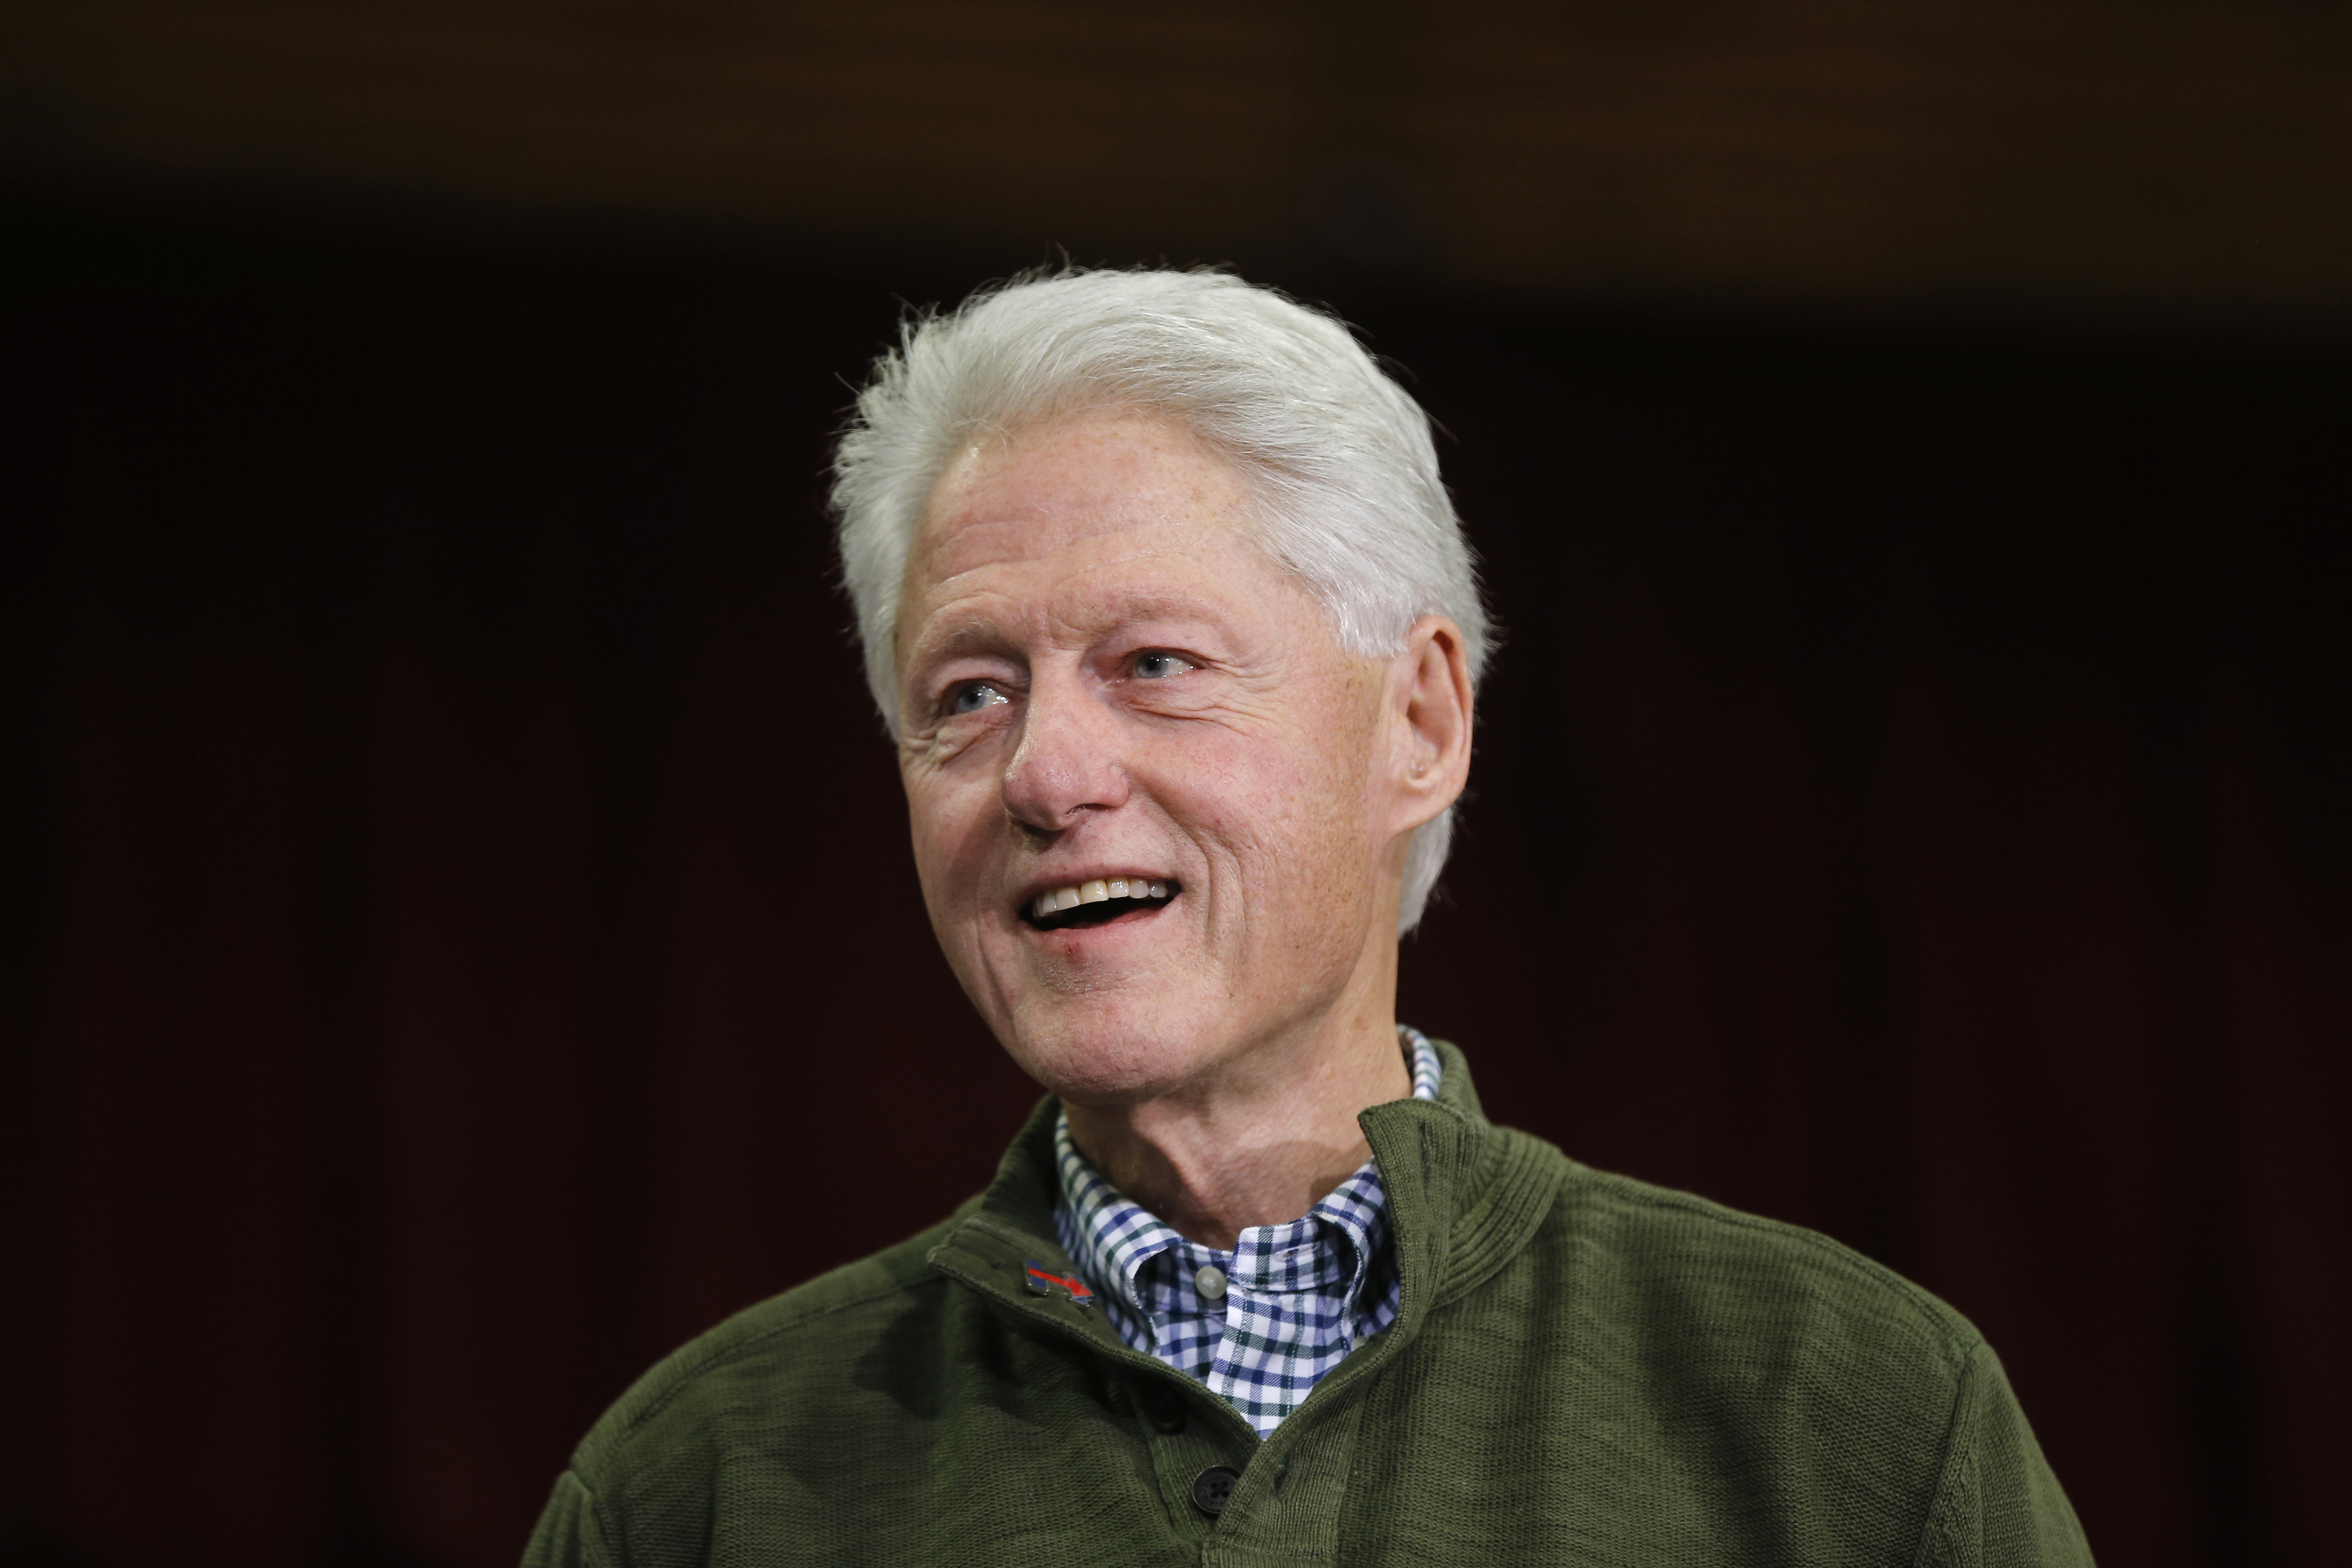 Bill Clinton Wallpapers Hq